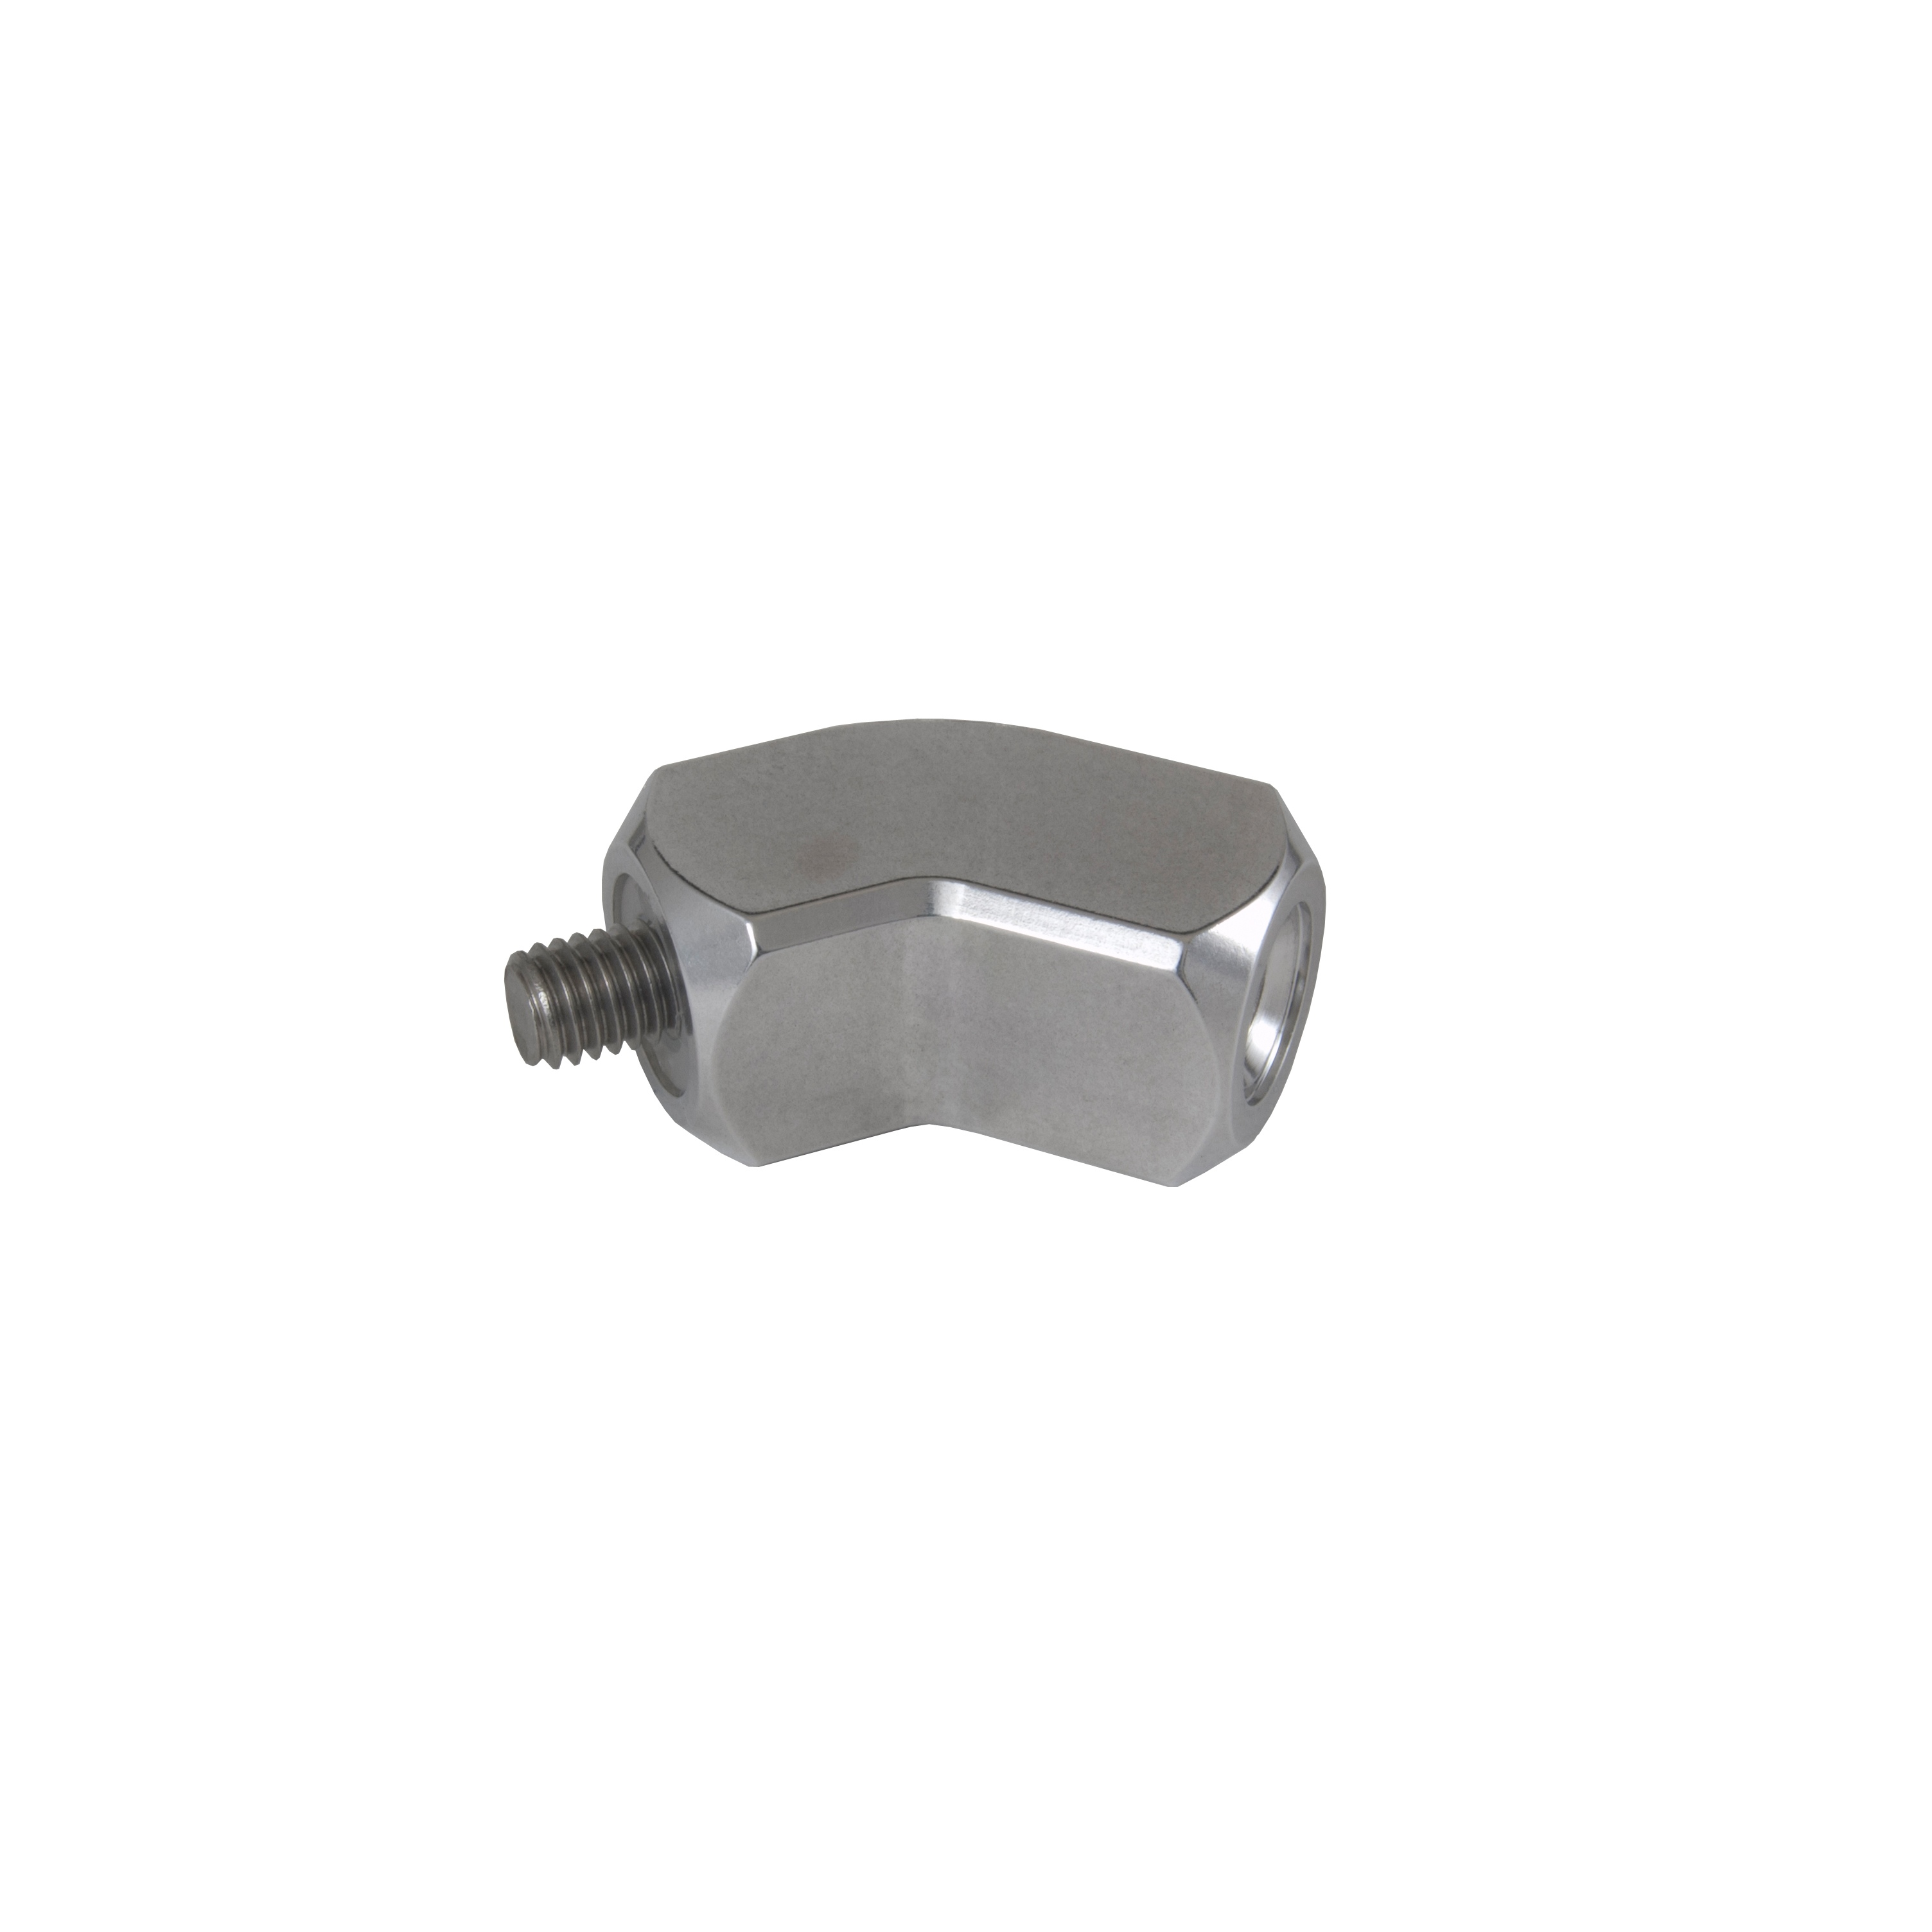 S-FIX 45 deg angled adapter m5